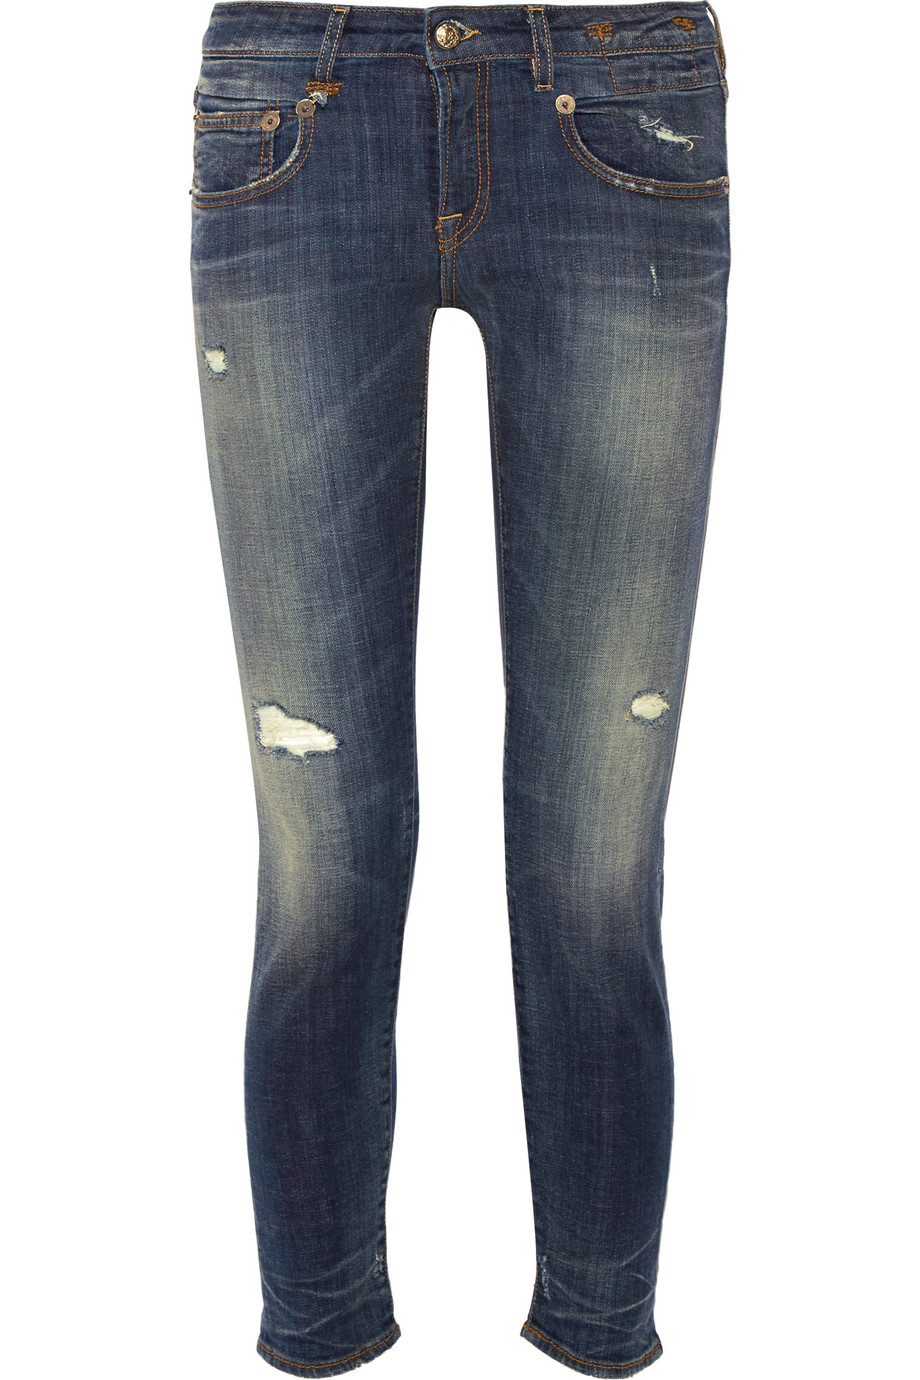 R13 Boy Distressed Low-Rise Slim Boyfriend Jeans, Mid Denim, Size: 26